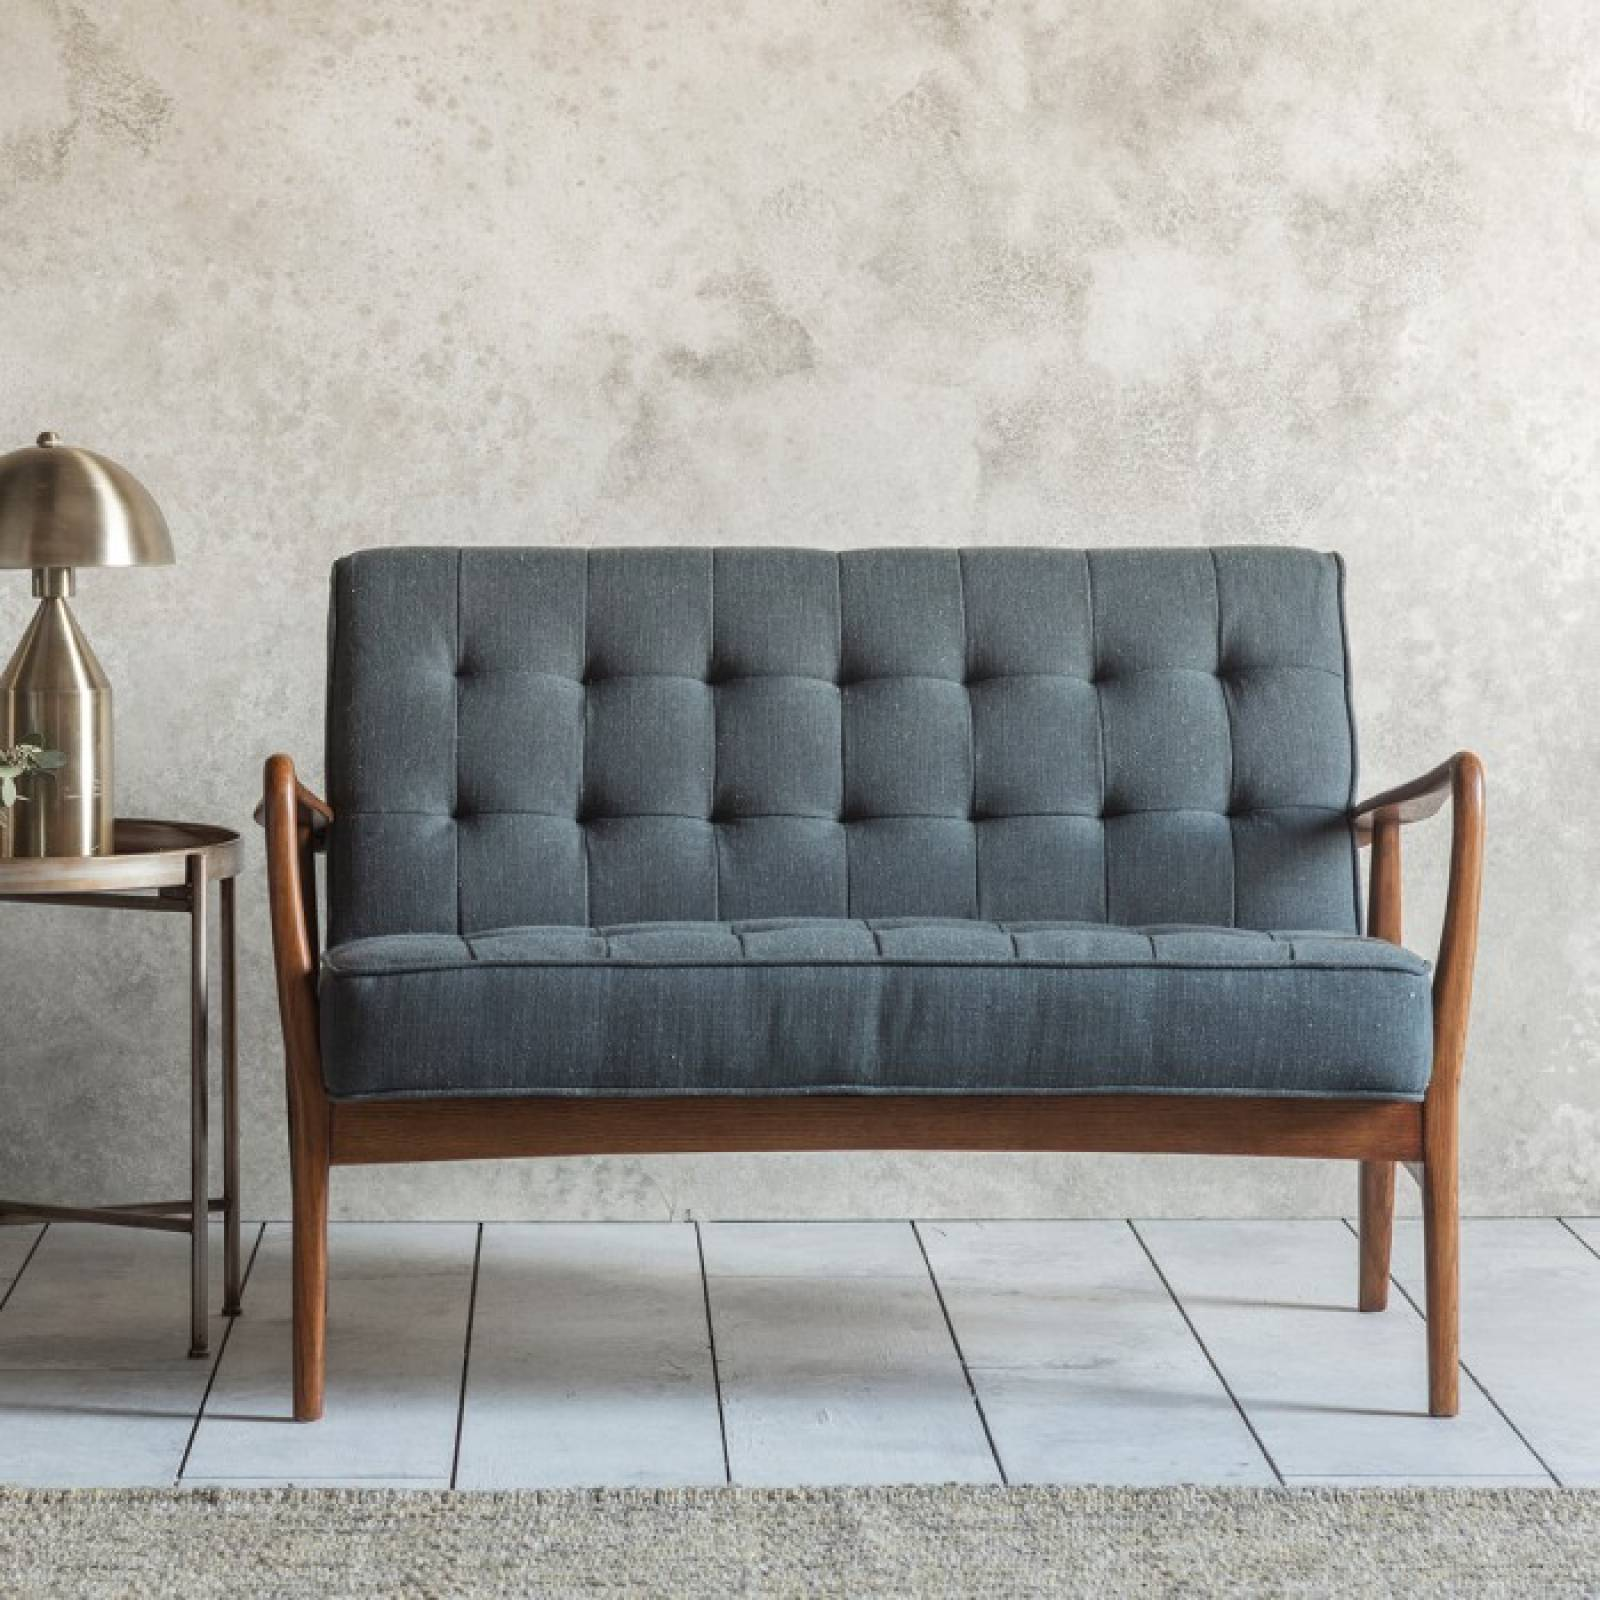 The Olsen - 2 Seater Settee in Fabric